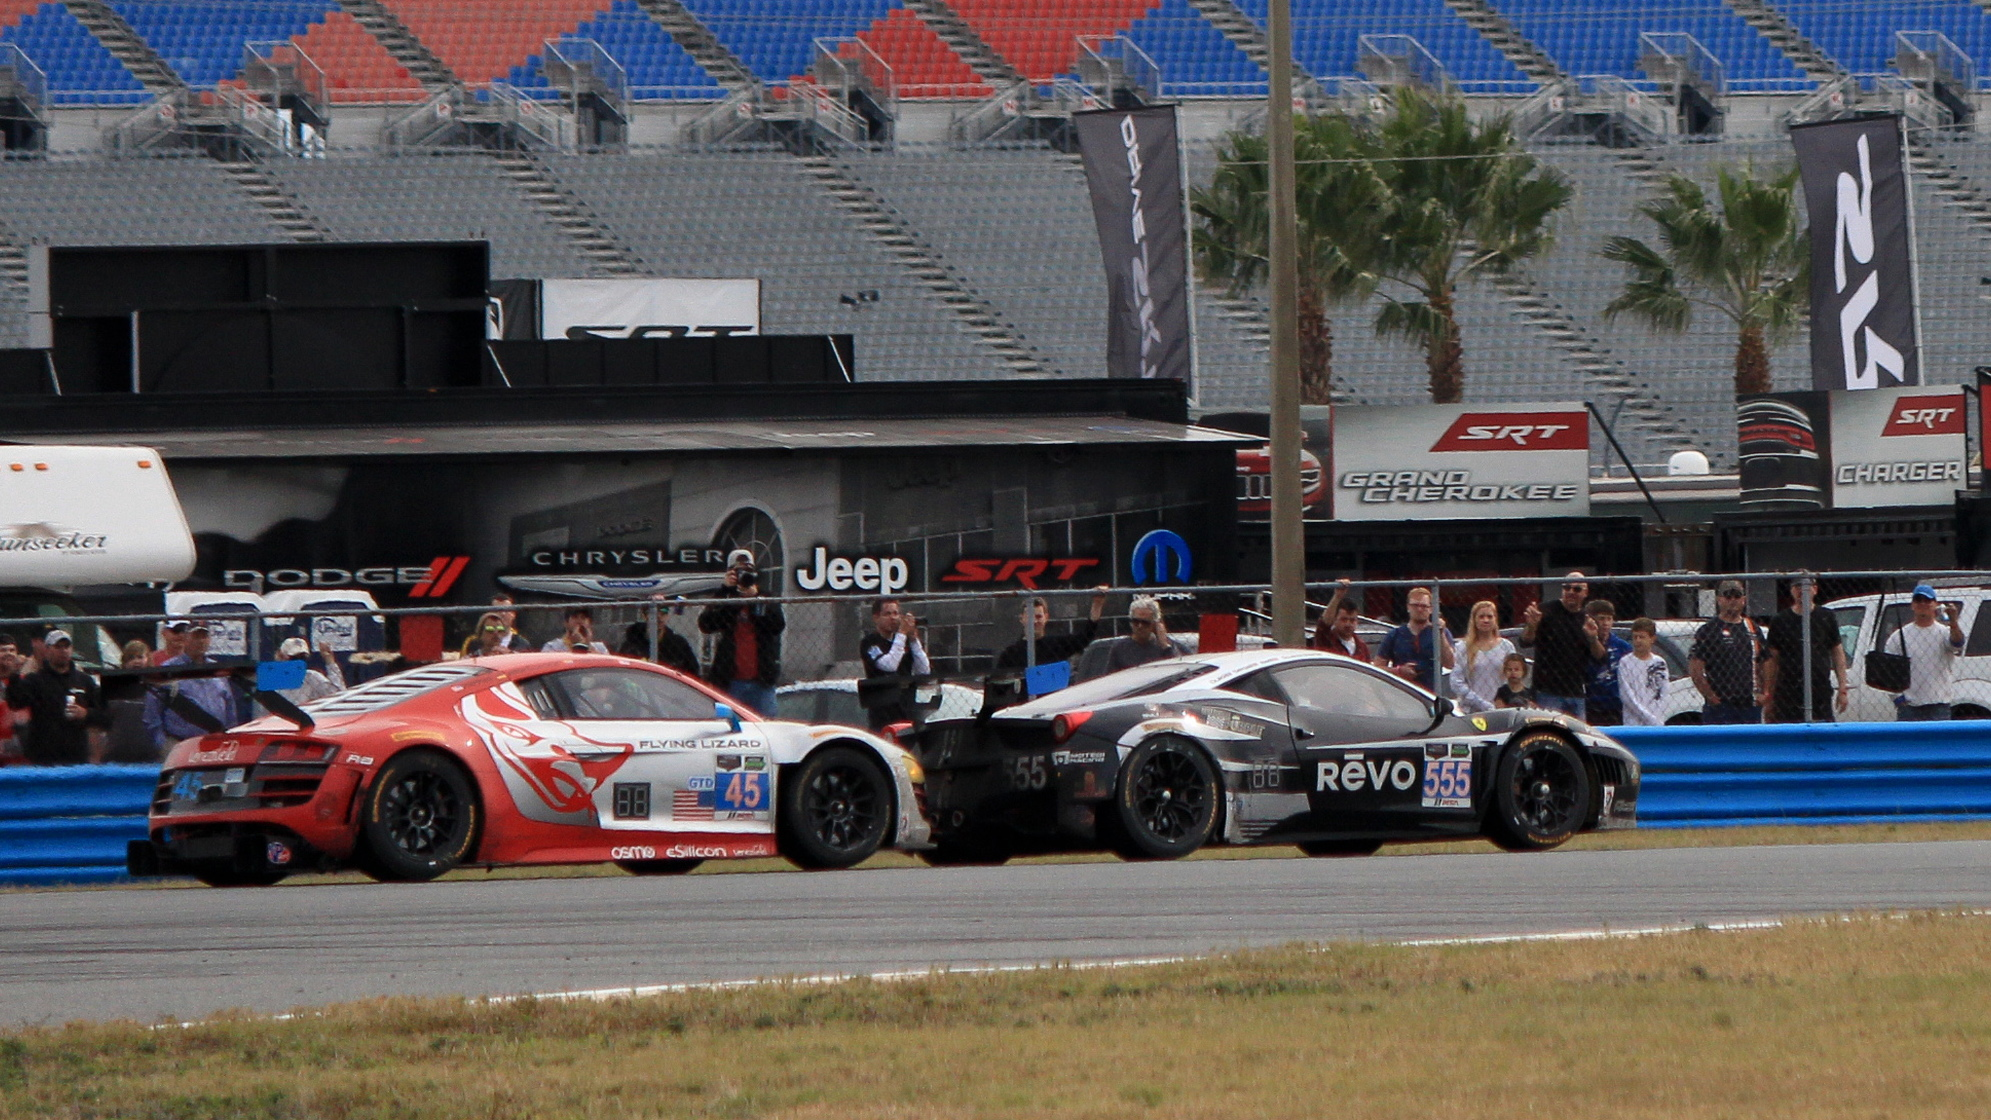 Winkelhock an Guidi battle for position at the end of the 2014 Rolex 24 at Daytona